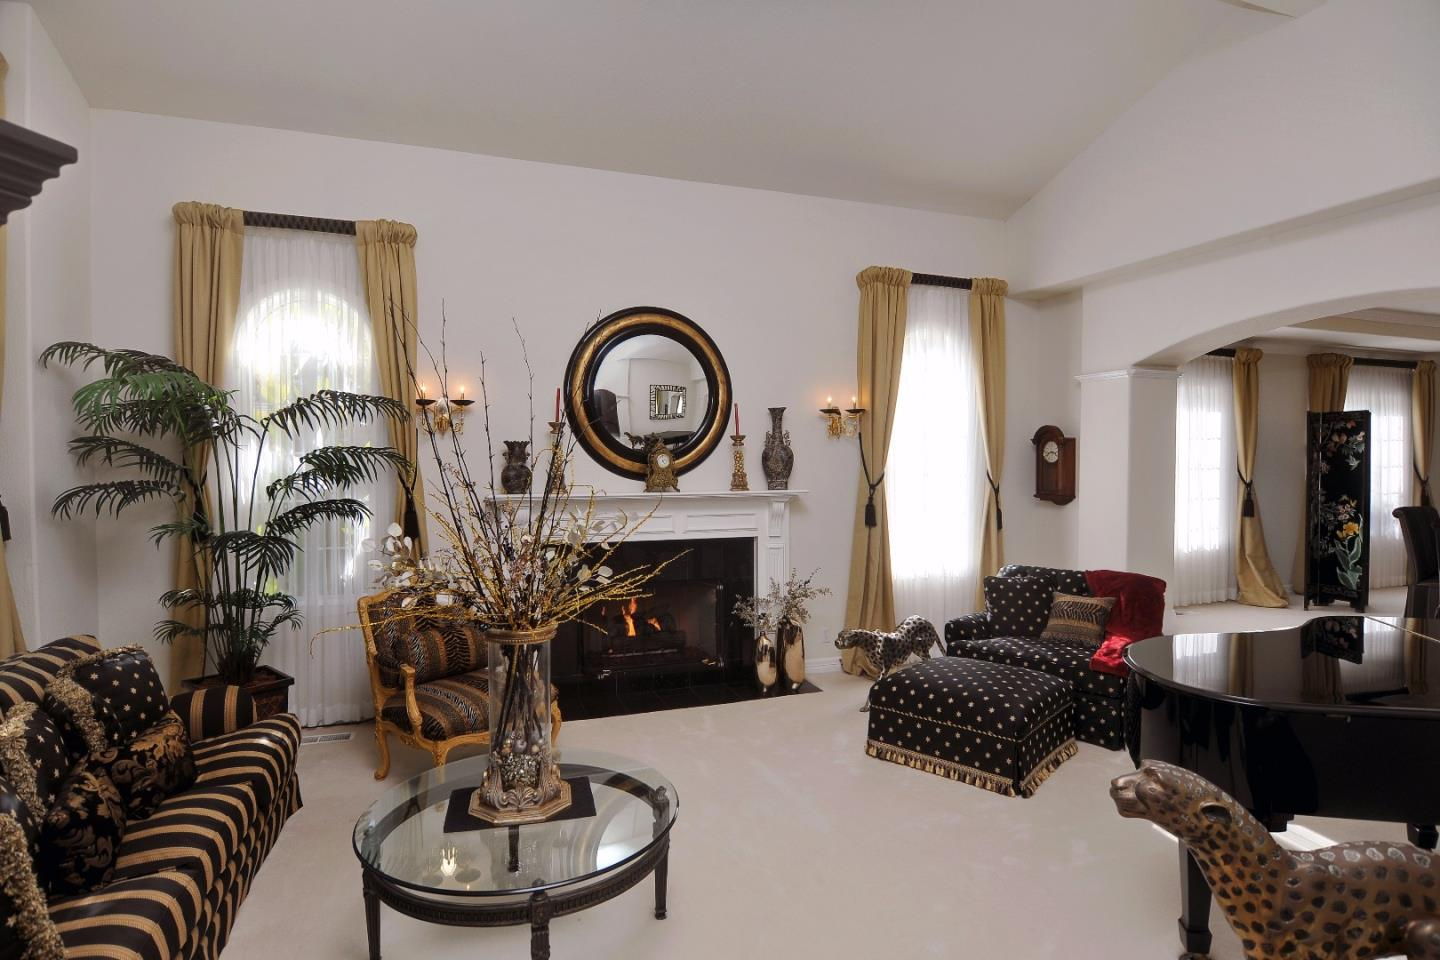 Additional photo for property listing at 9 Colton Ct  REDWOOD CITY, CALIFORNIA 94062